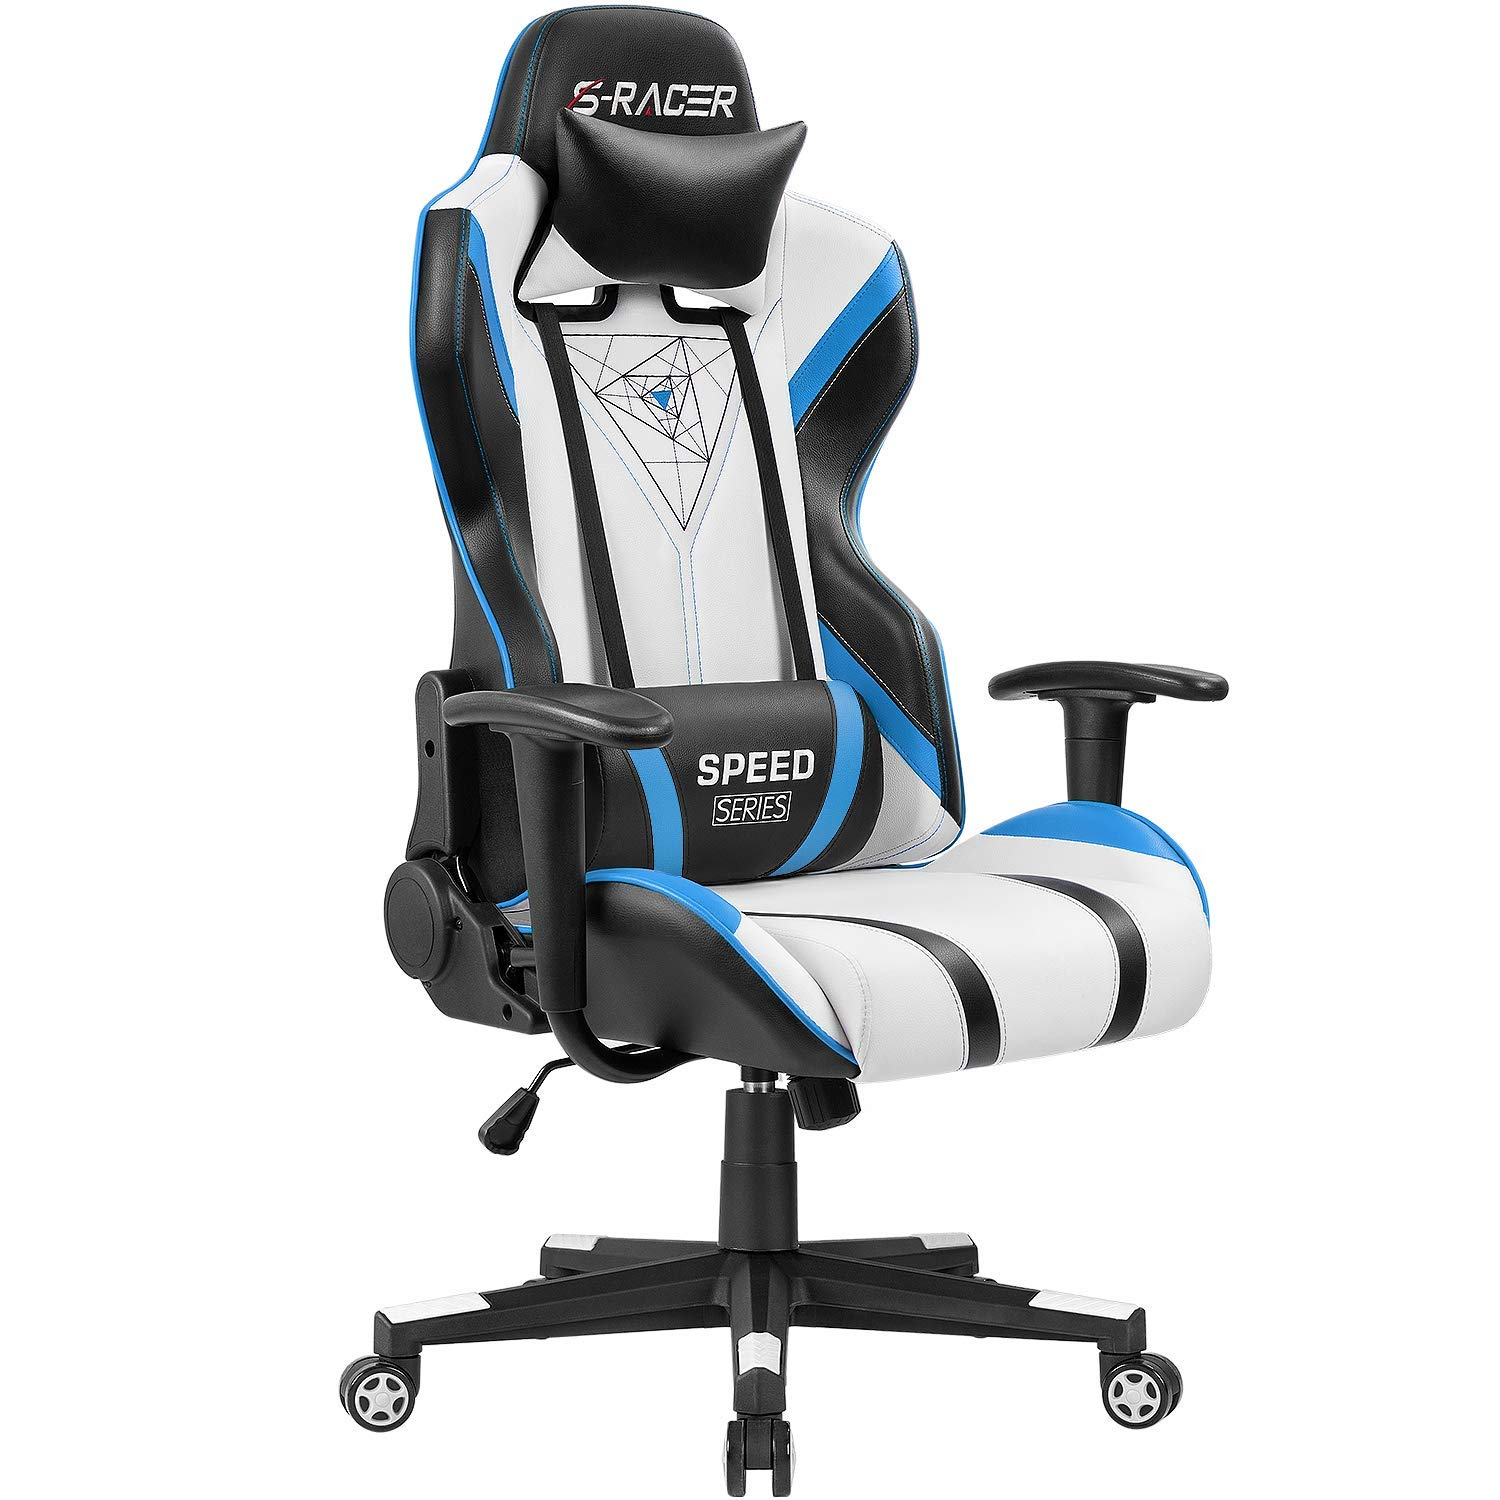 Tremendous The Best Gaming Chair For Xbox One Dailytribune Chair Design For Home Dailytribuneorg